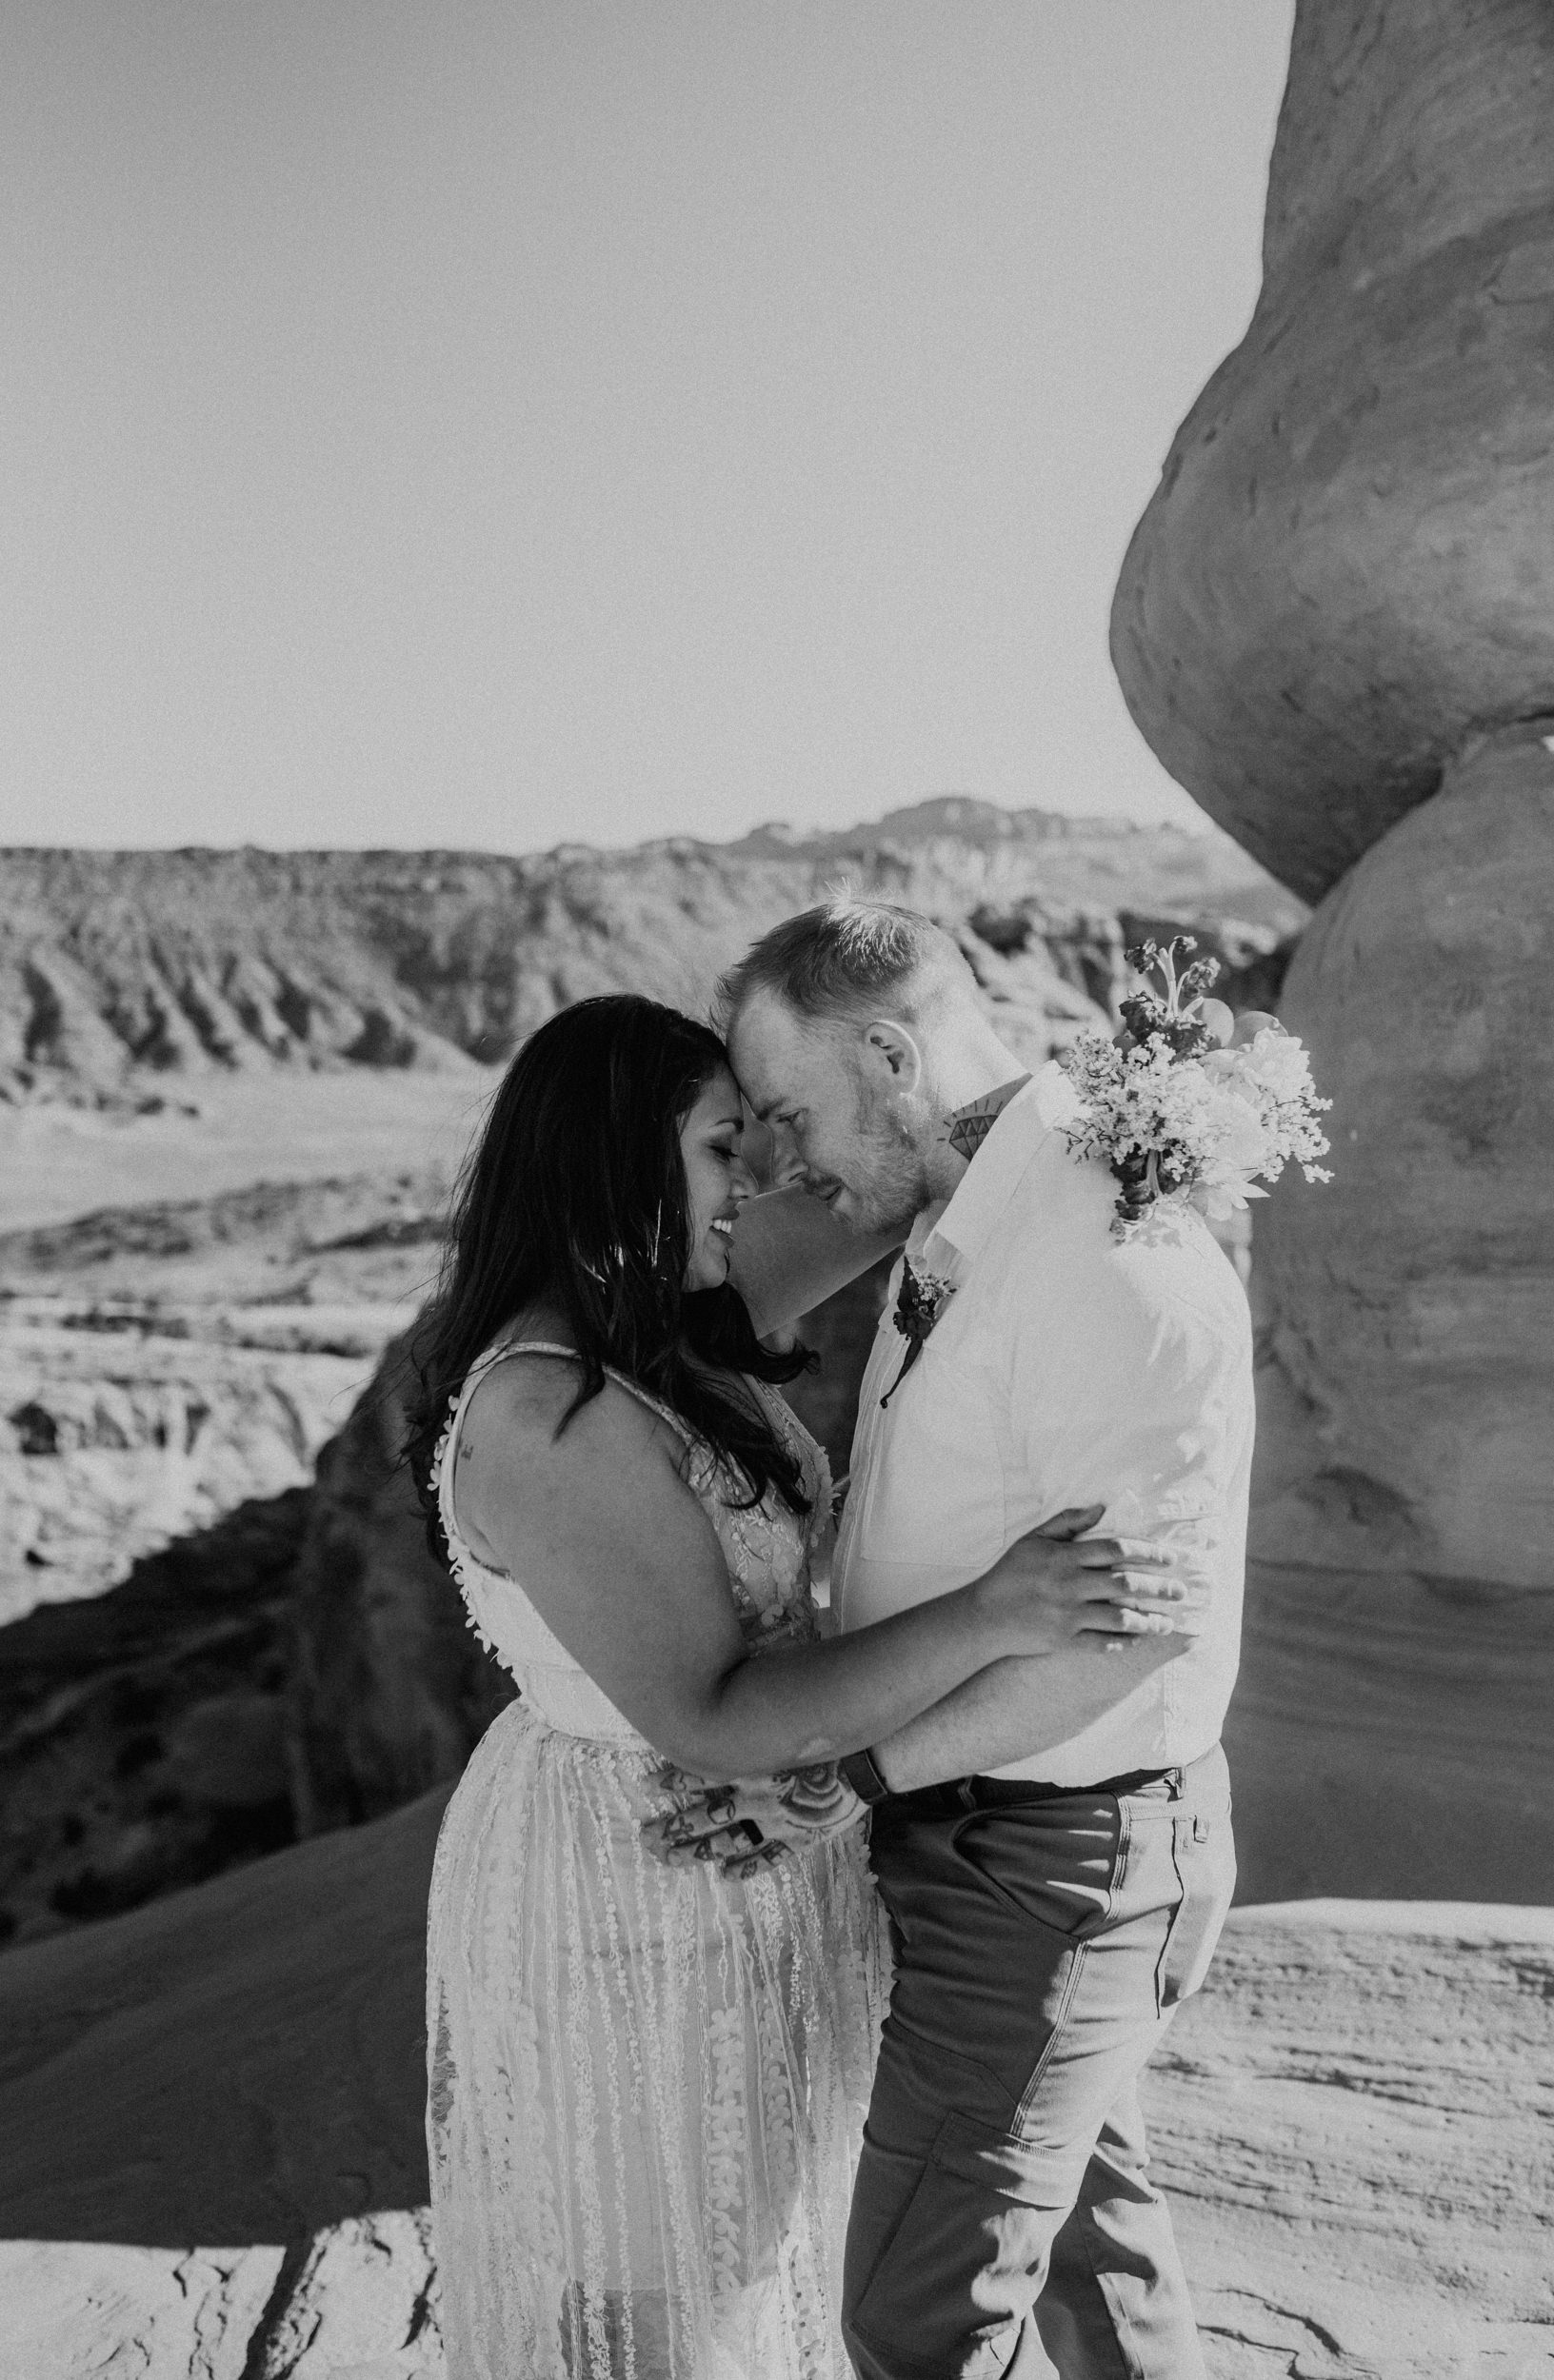 Moab adventure elopement at the Delicate Arch.